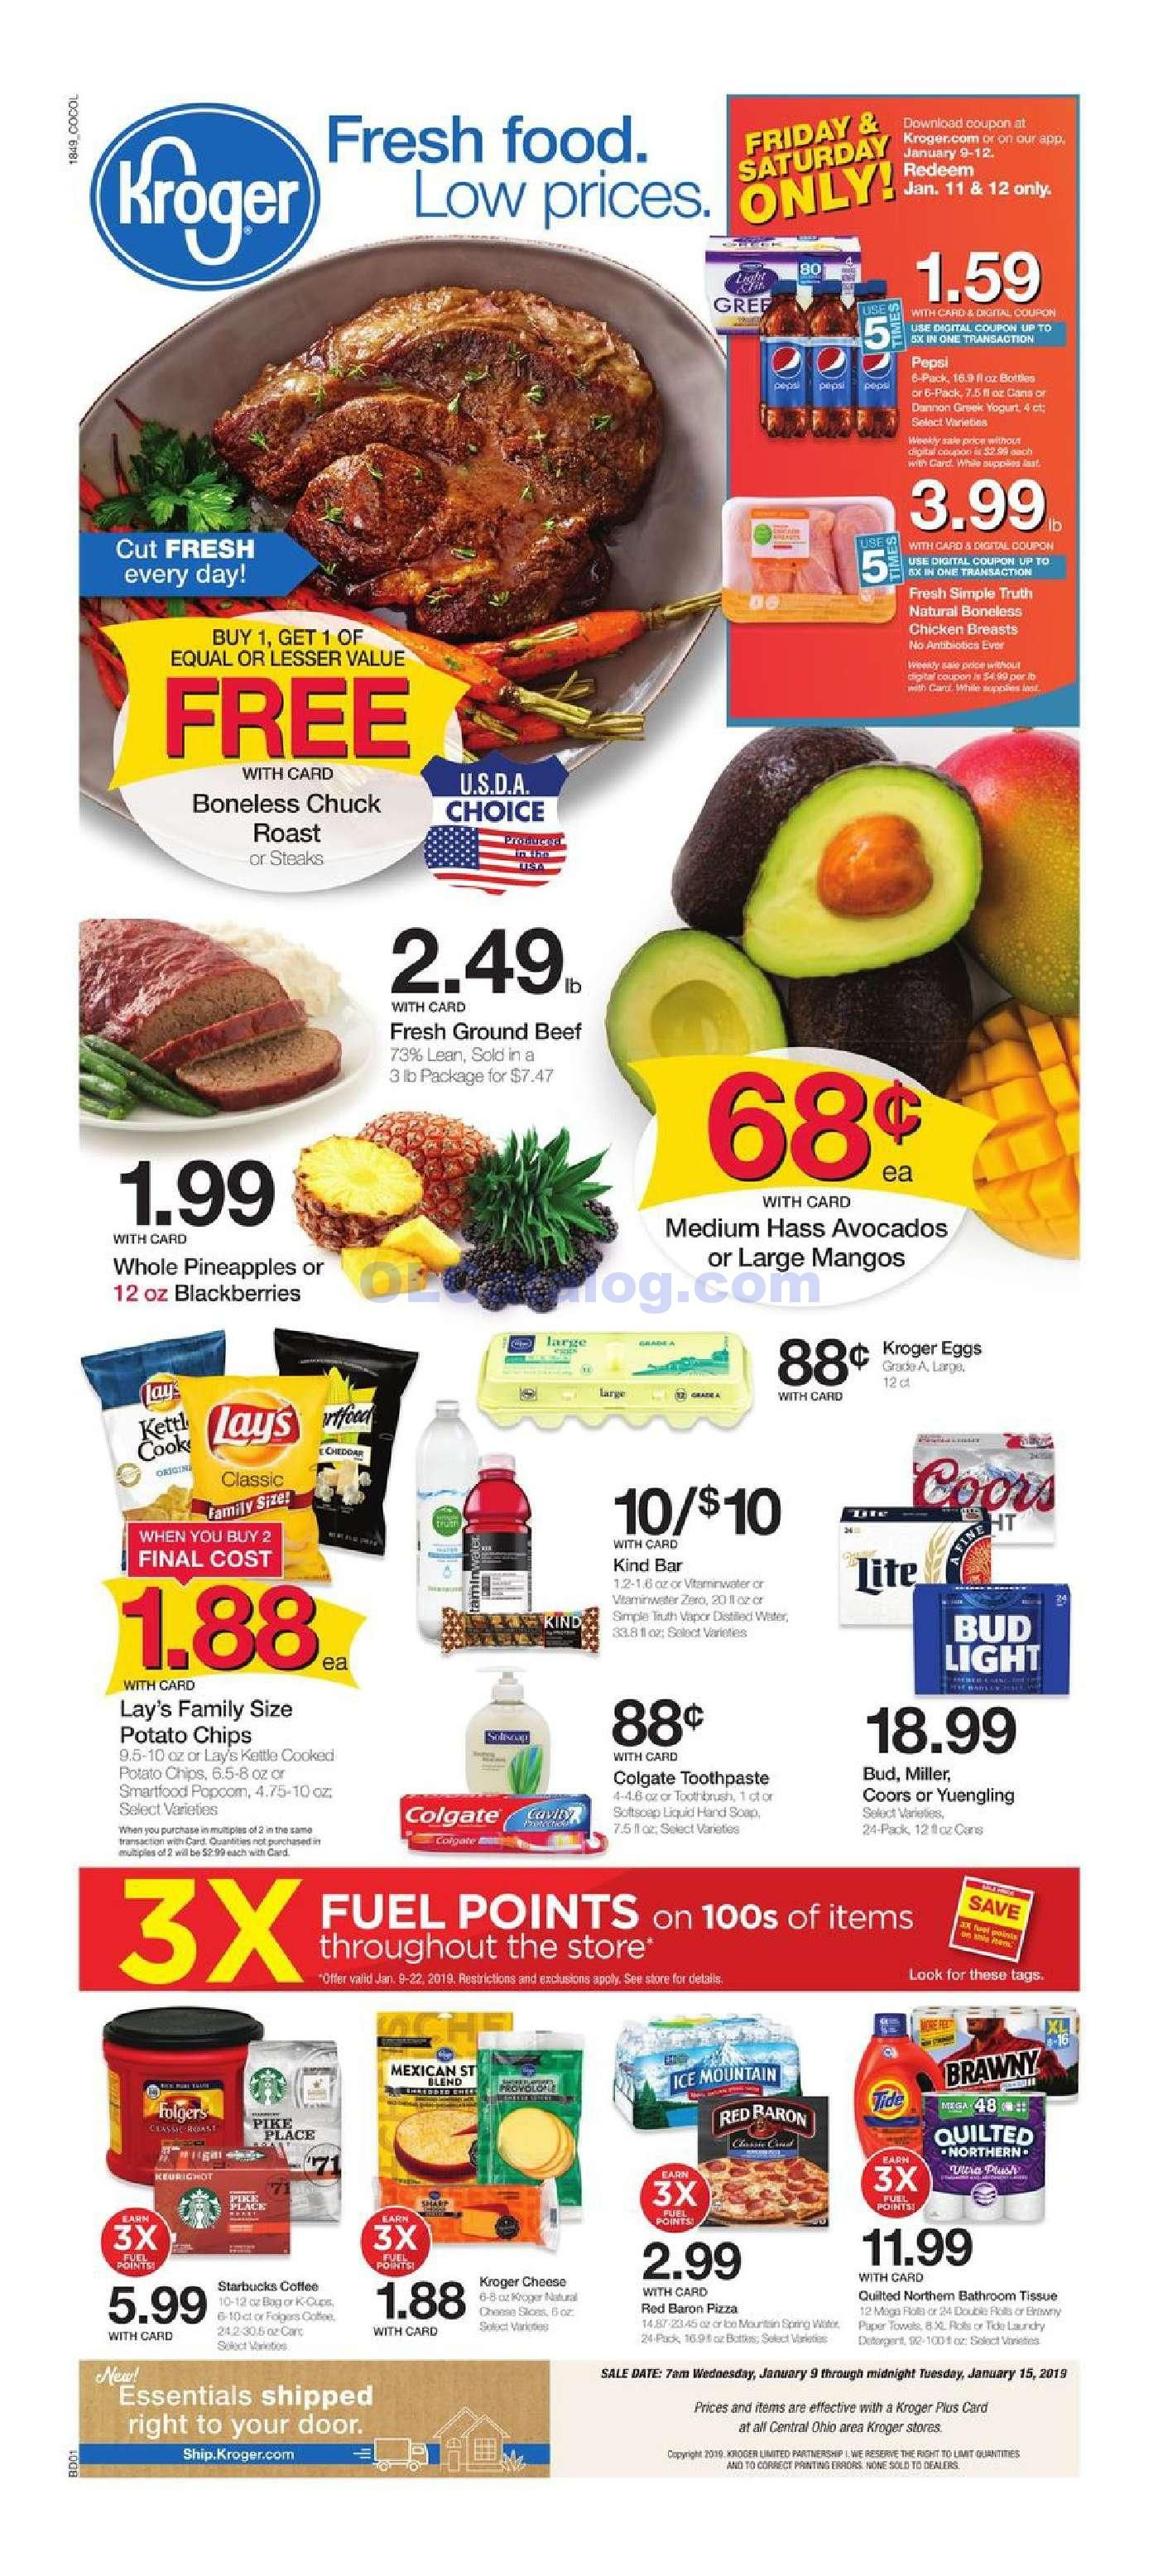 Kroger Weekly Ad January 9 15, 2019. Check Latest Kroger